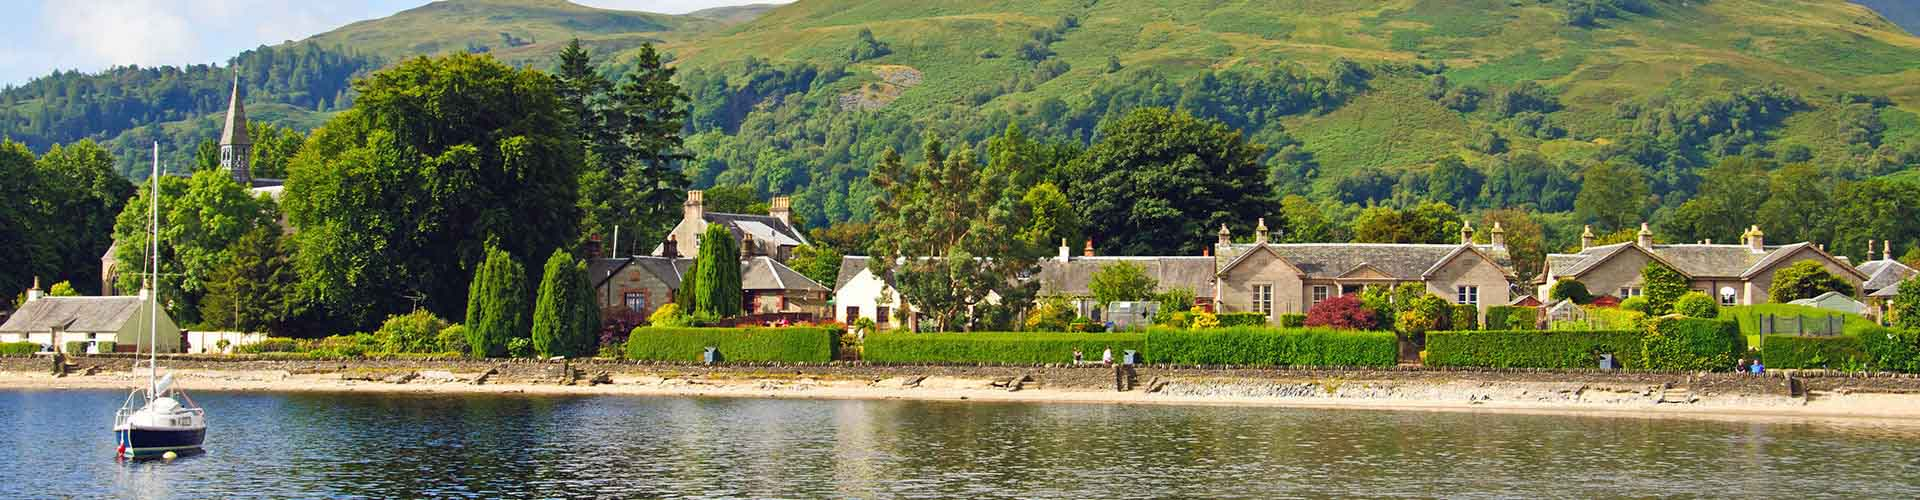 Loch Lomond – Hostels in Loch Lomond. Maps for Loch Lomond, Photos and Reviews for each hostel in Loch Lomond.